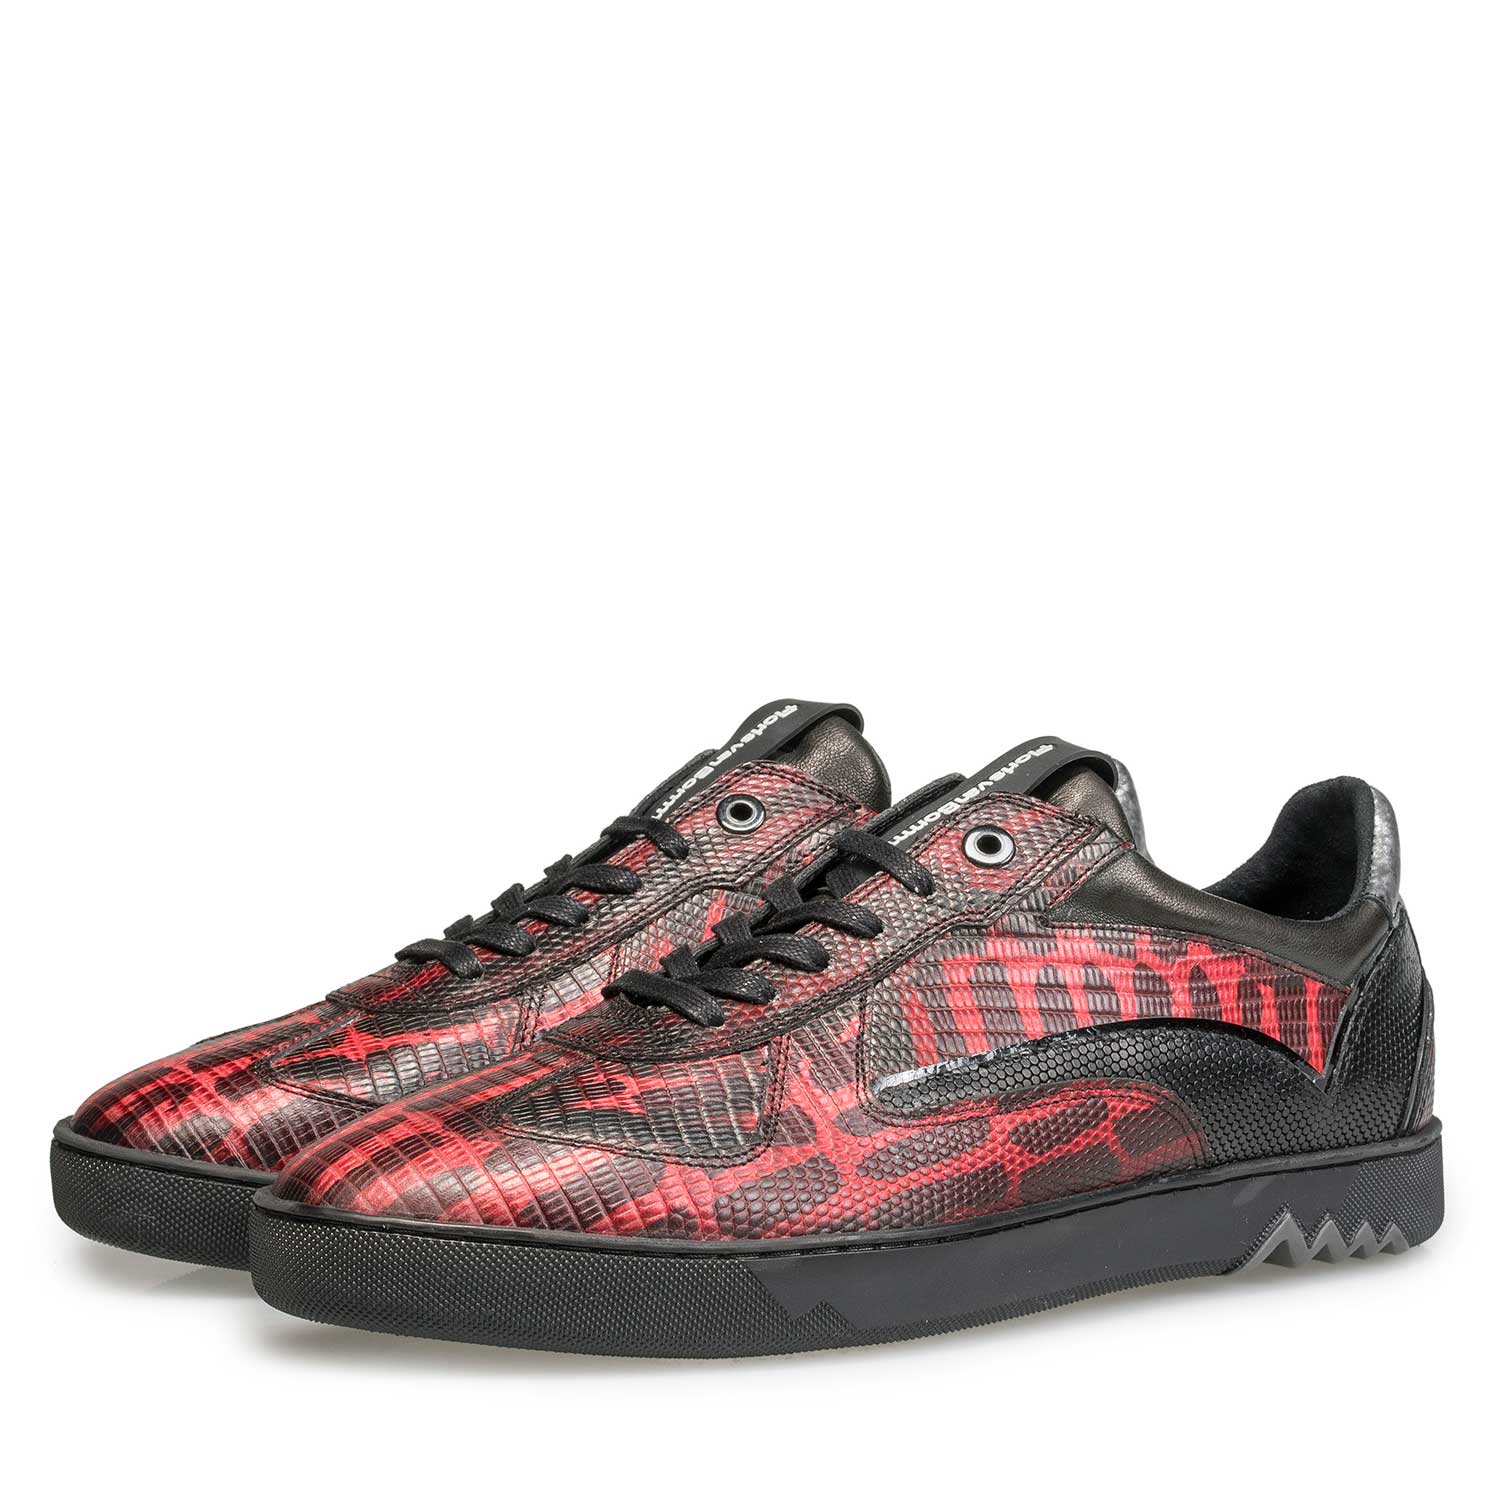 16242/04 - Red calf's leather sneaker with lizard print